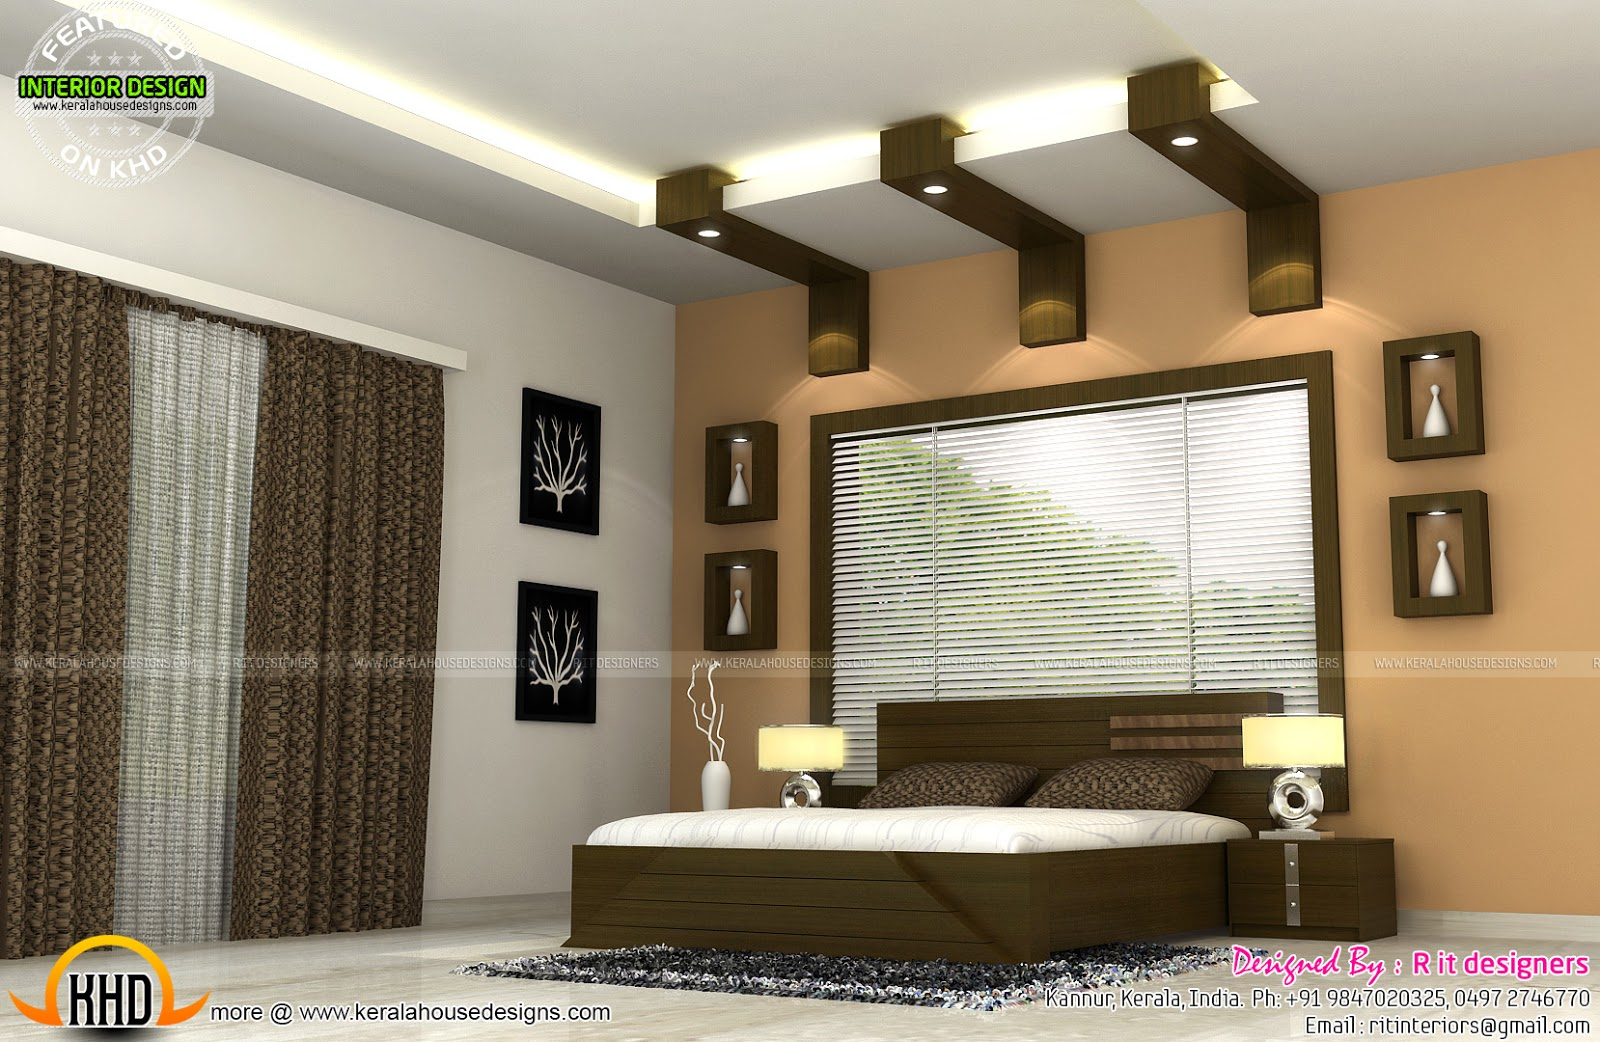 Interiors of bedrooms and kitchen kerala home design and for Bed room interior design images